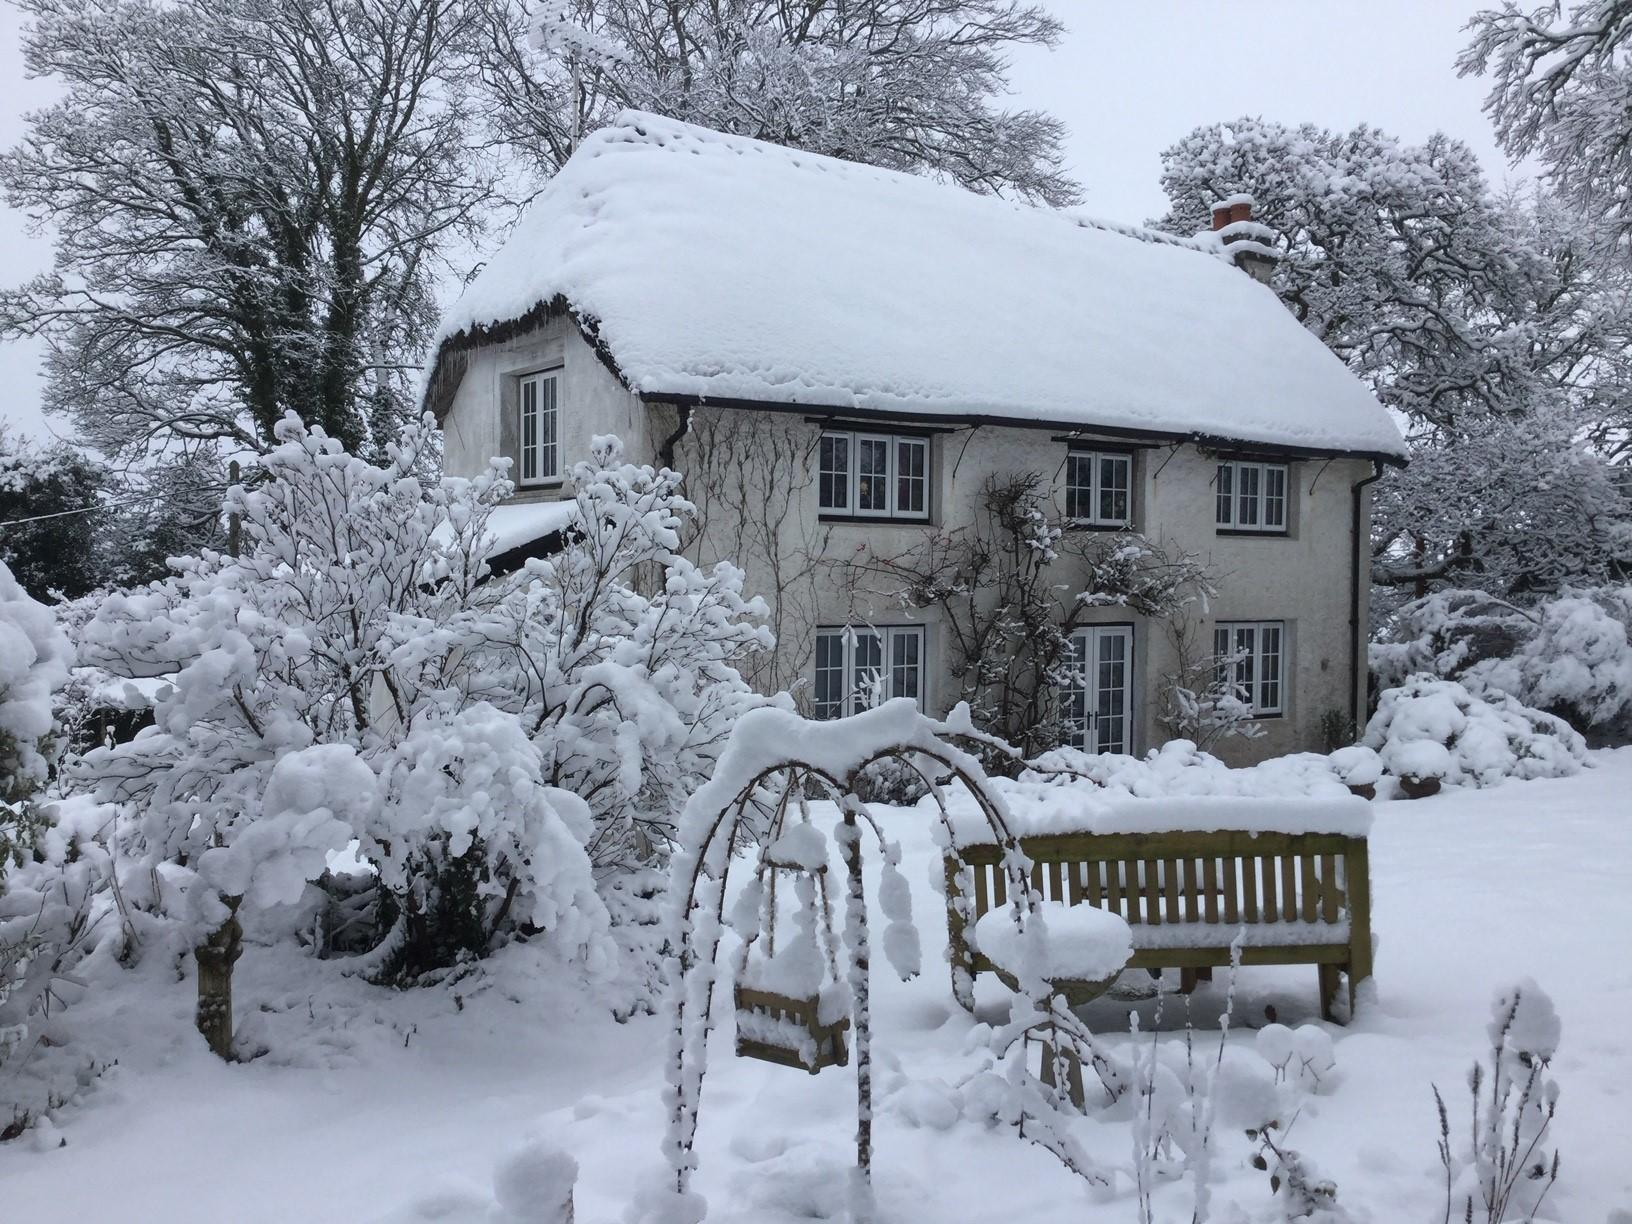 Snow in Throwleigh, Dartmoor. image by Kay Wild.